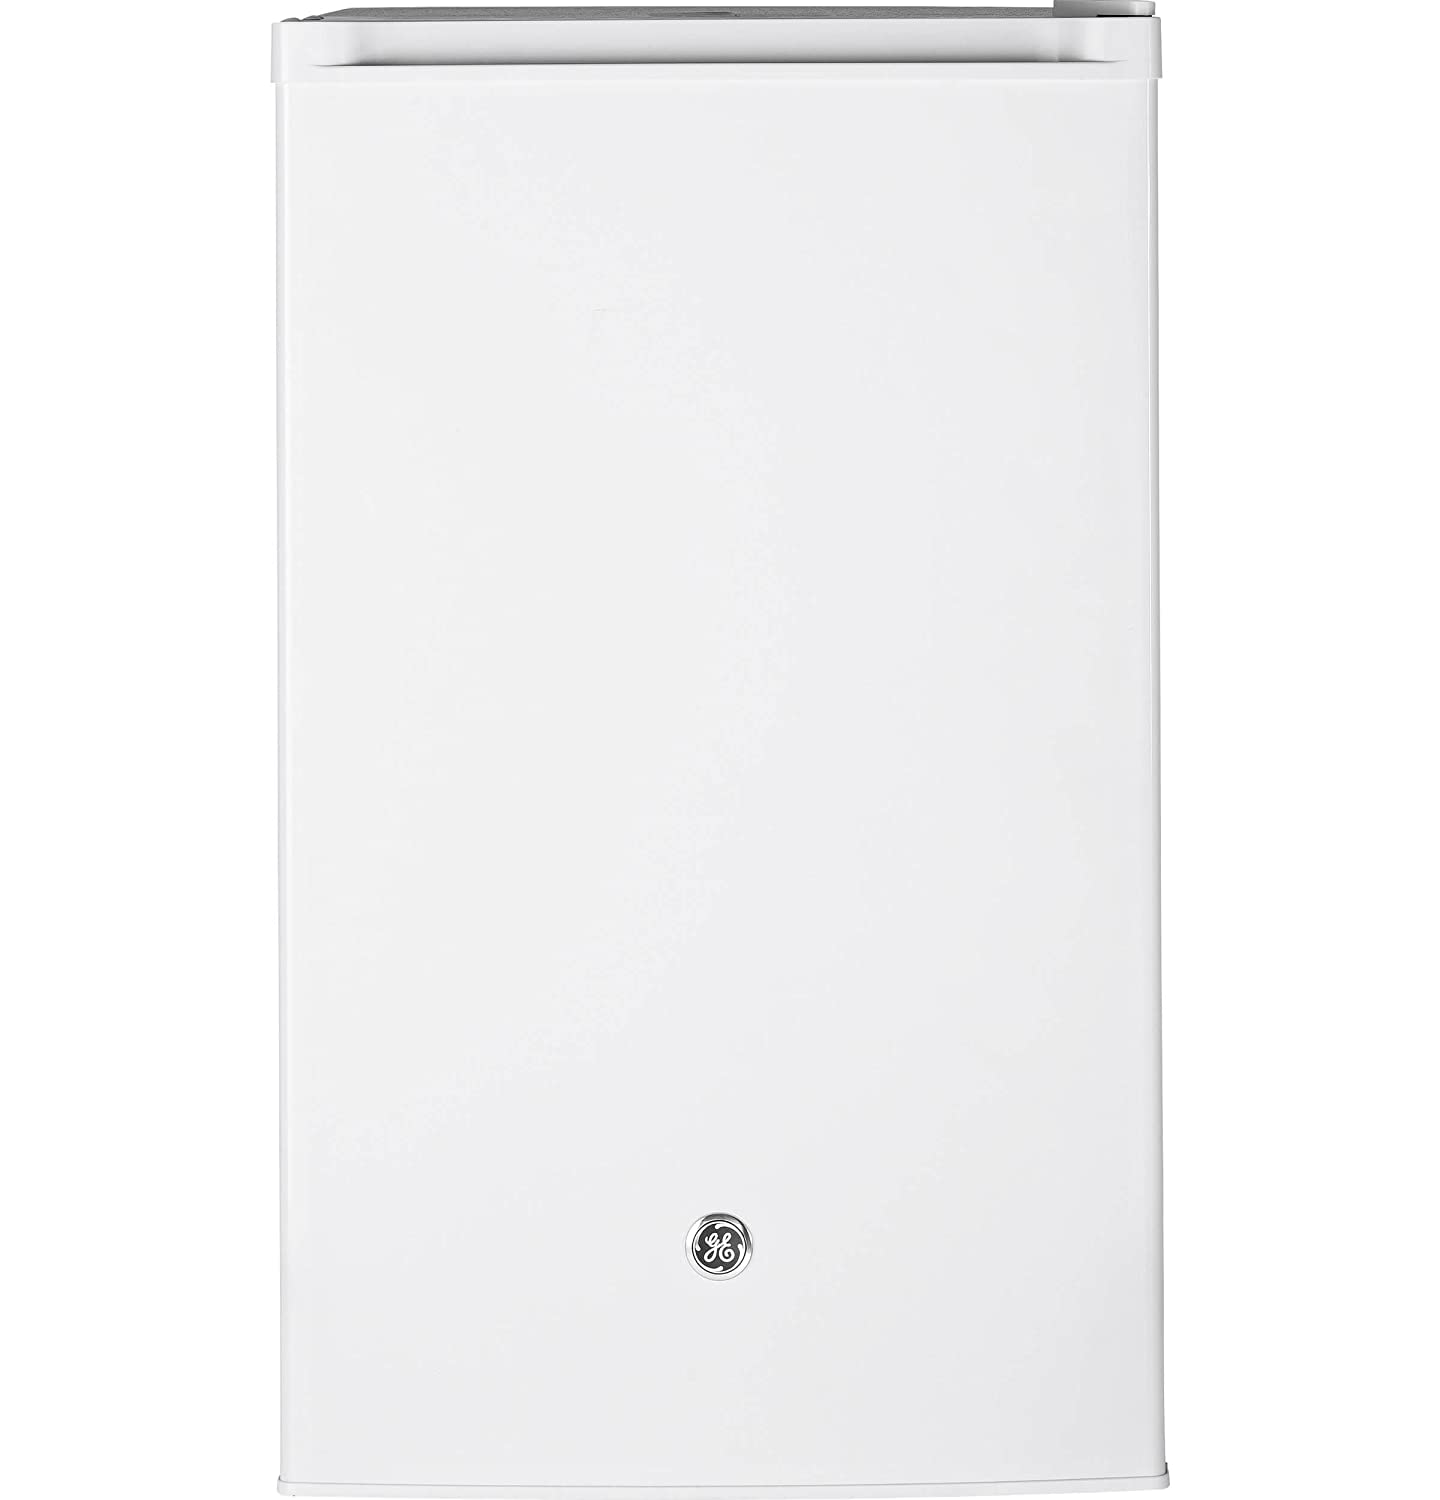 """GE GME04GGKWW 20"""" Freestanding Compact Refrigerator in White"""